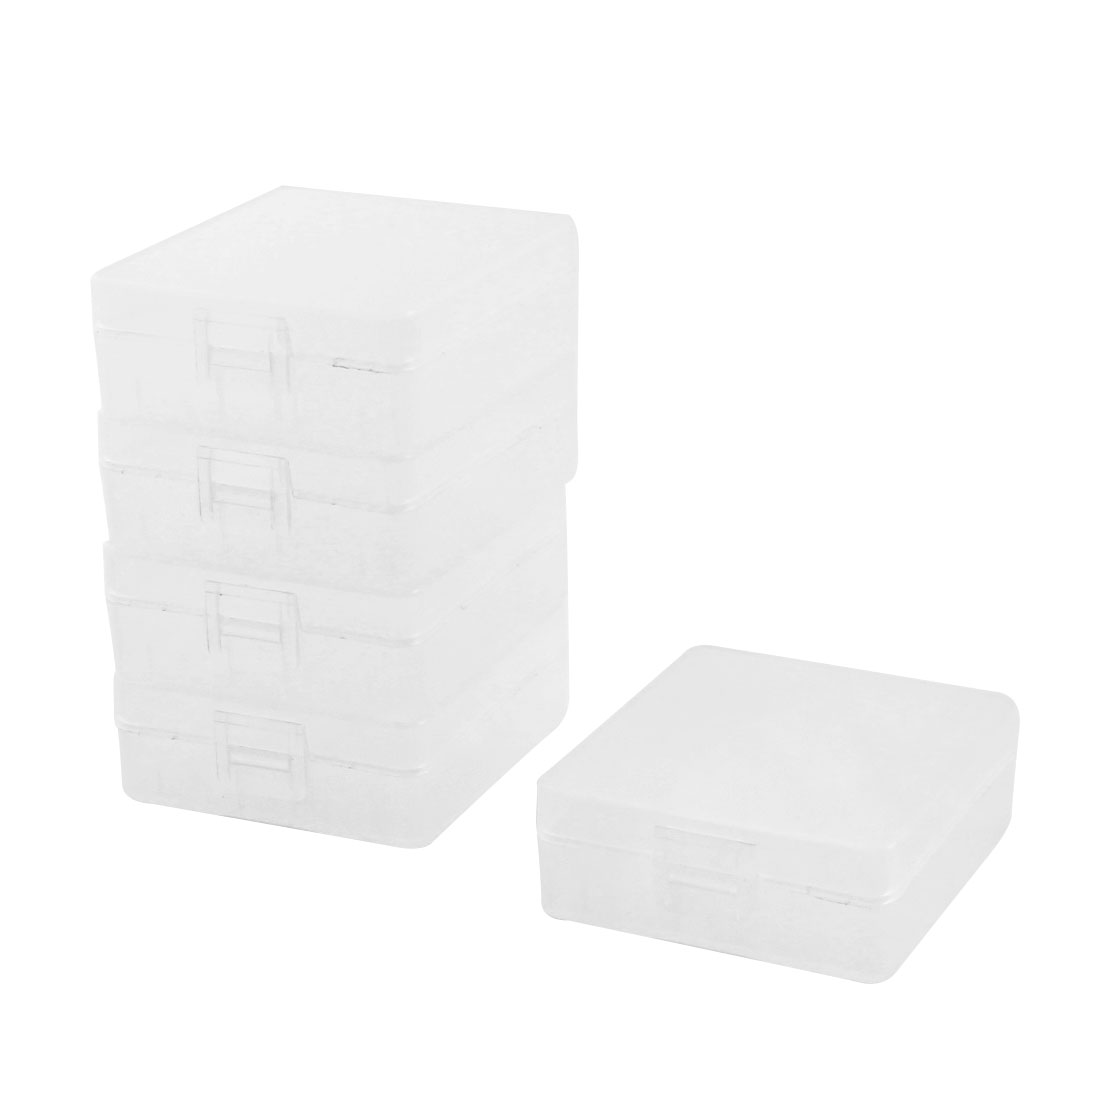 Clear Plastic 2 Capacity 9V Battery Holder Case Storage Box 5 Pcs